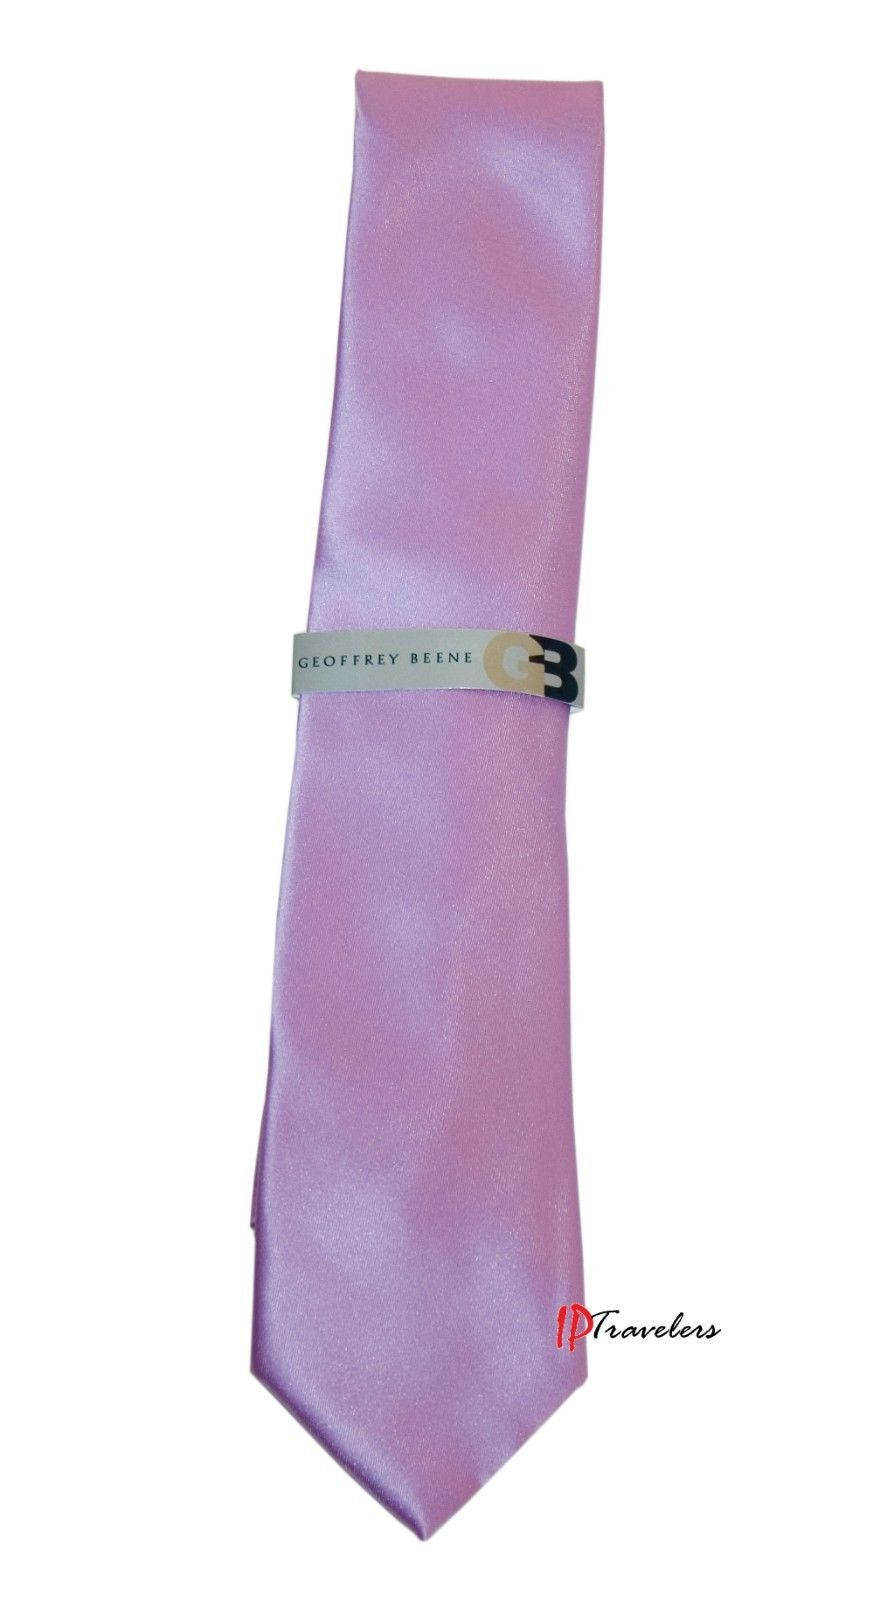 Geoffrey Beene Men's Neck Tie Solid Purple 100% Polyester Classic Size $55 image 1